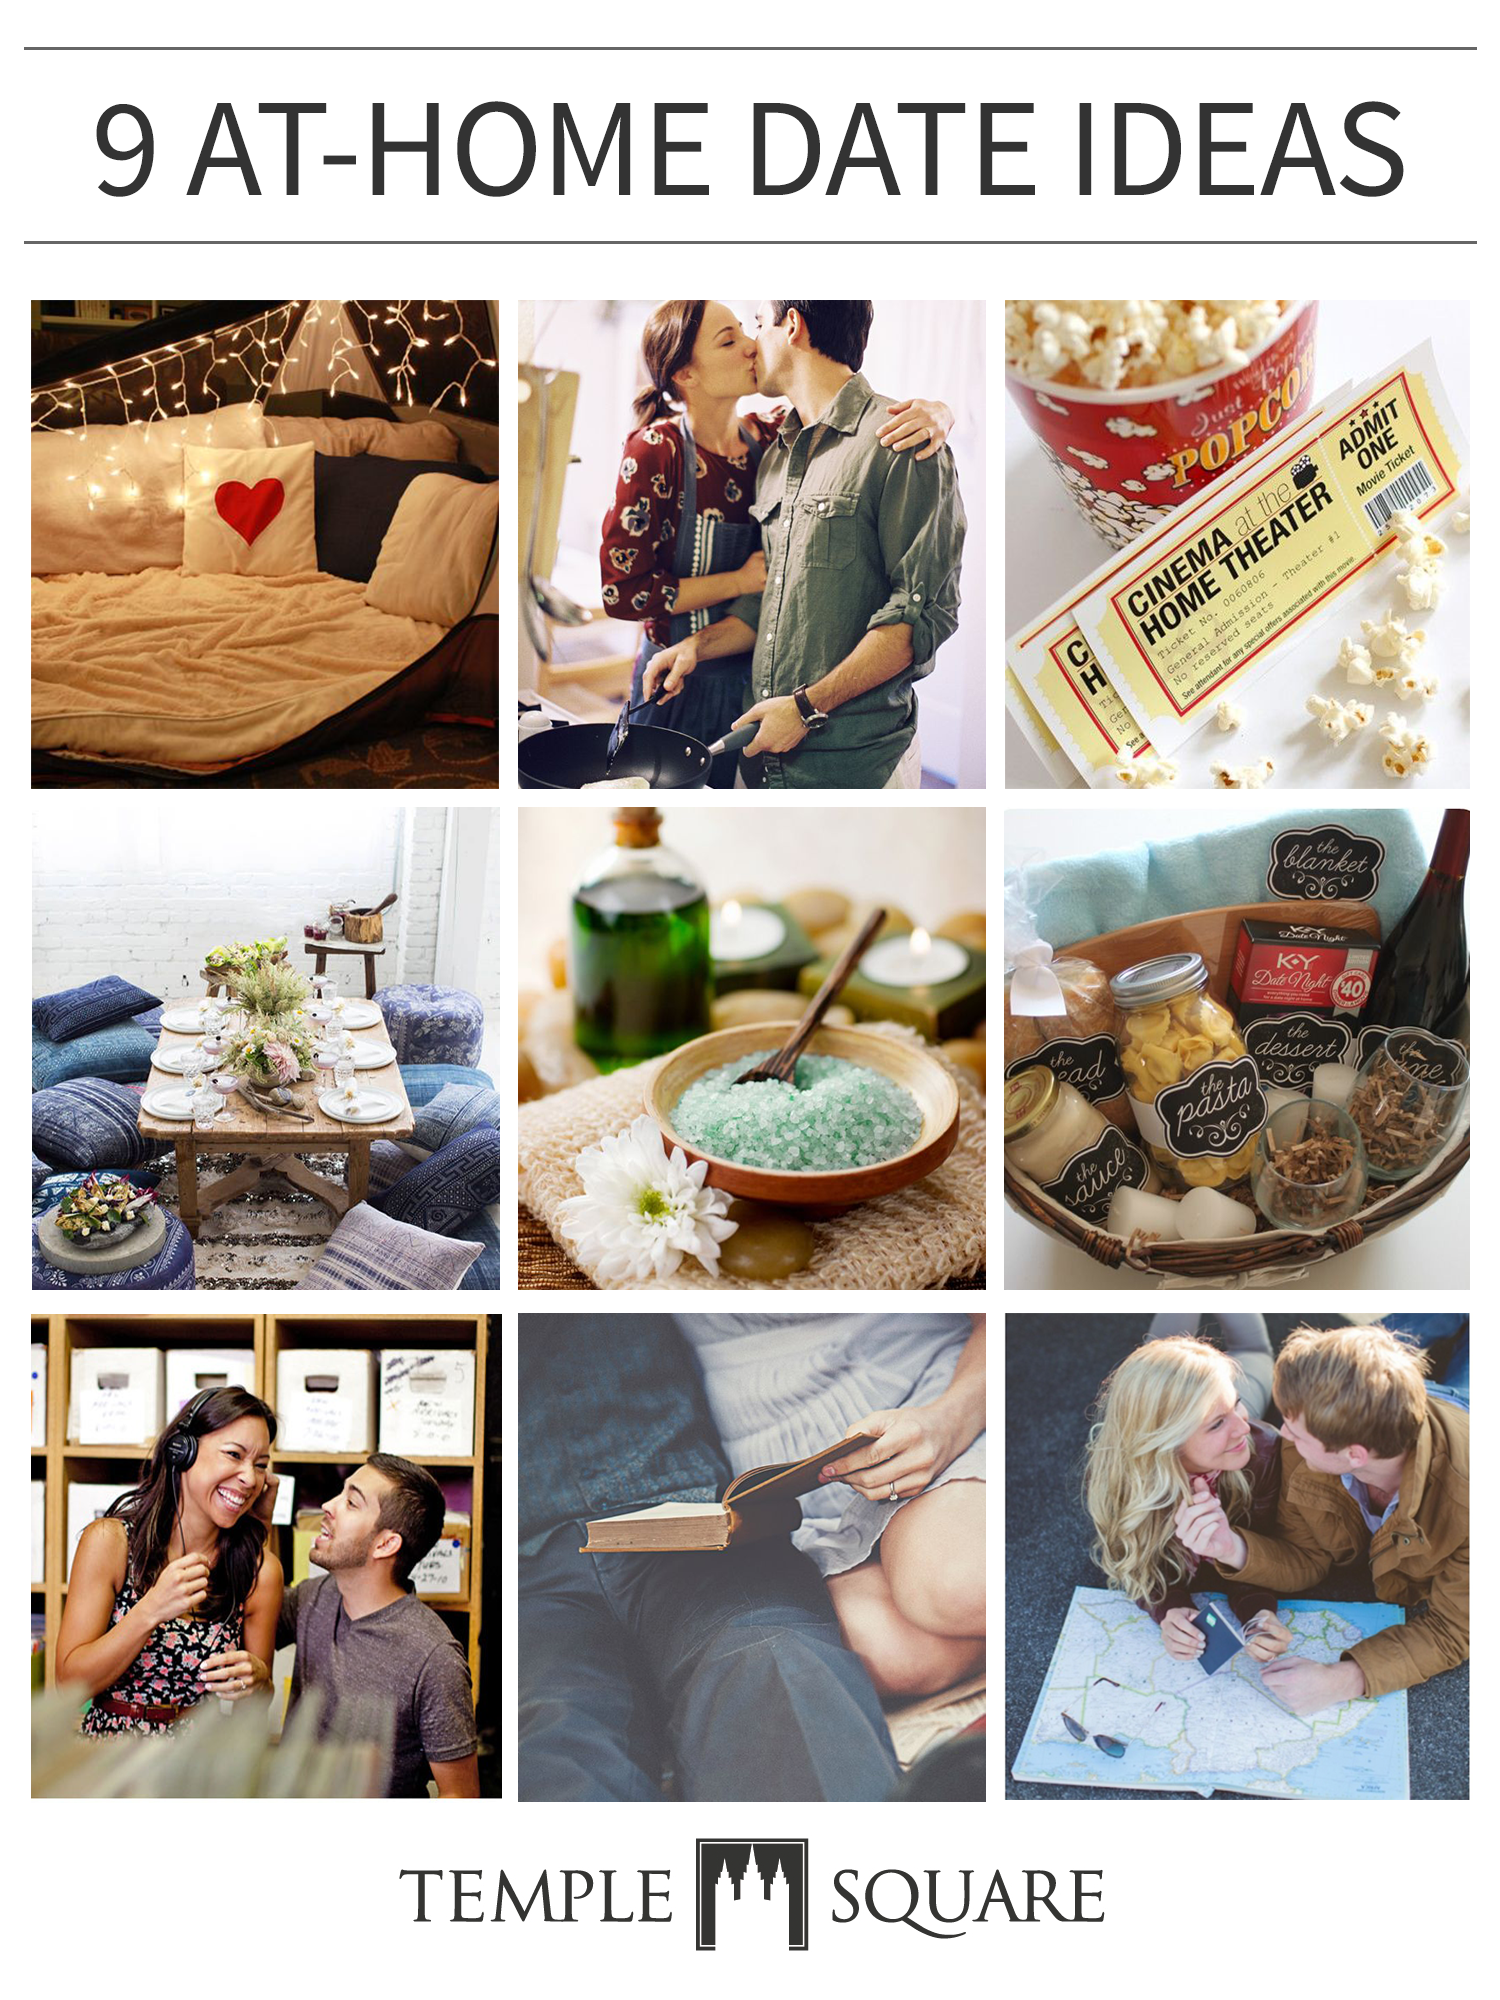 9 at home date ideas wedding blog at home dates dating ideas